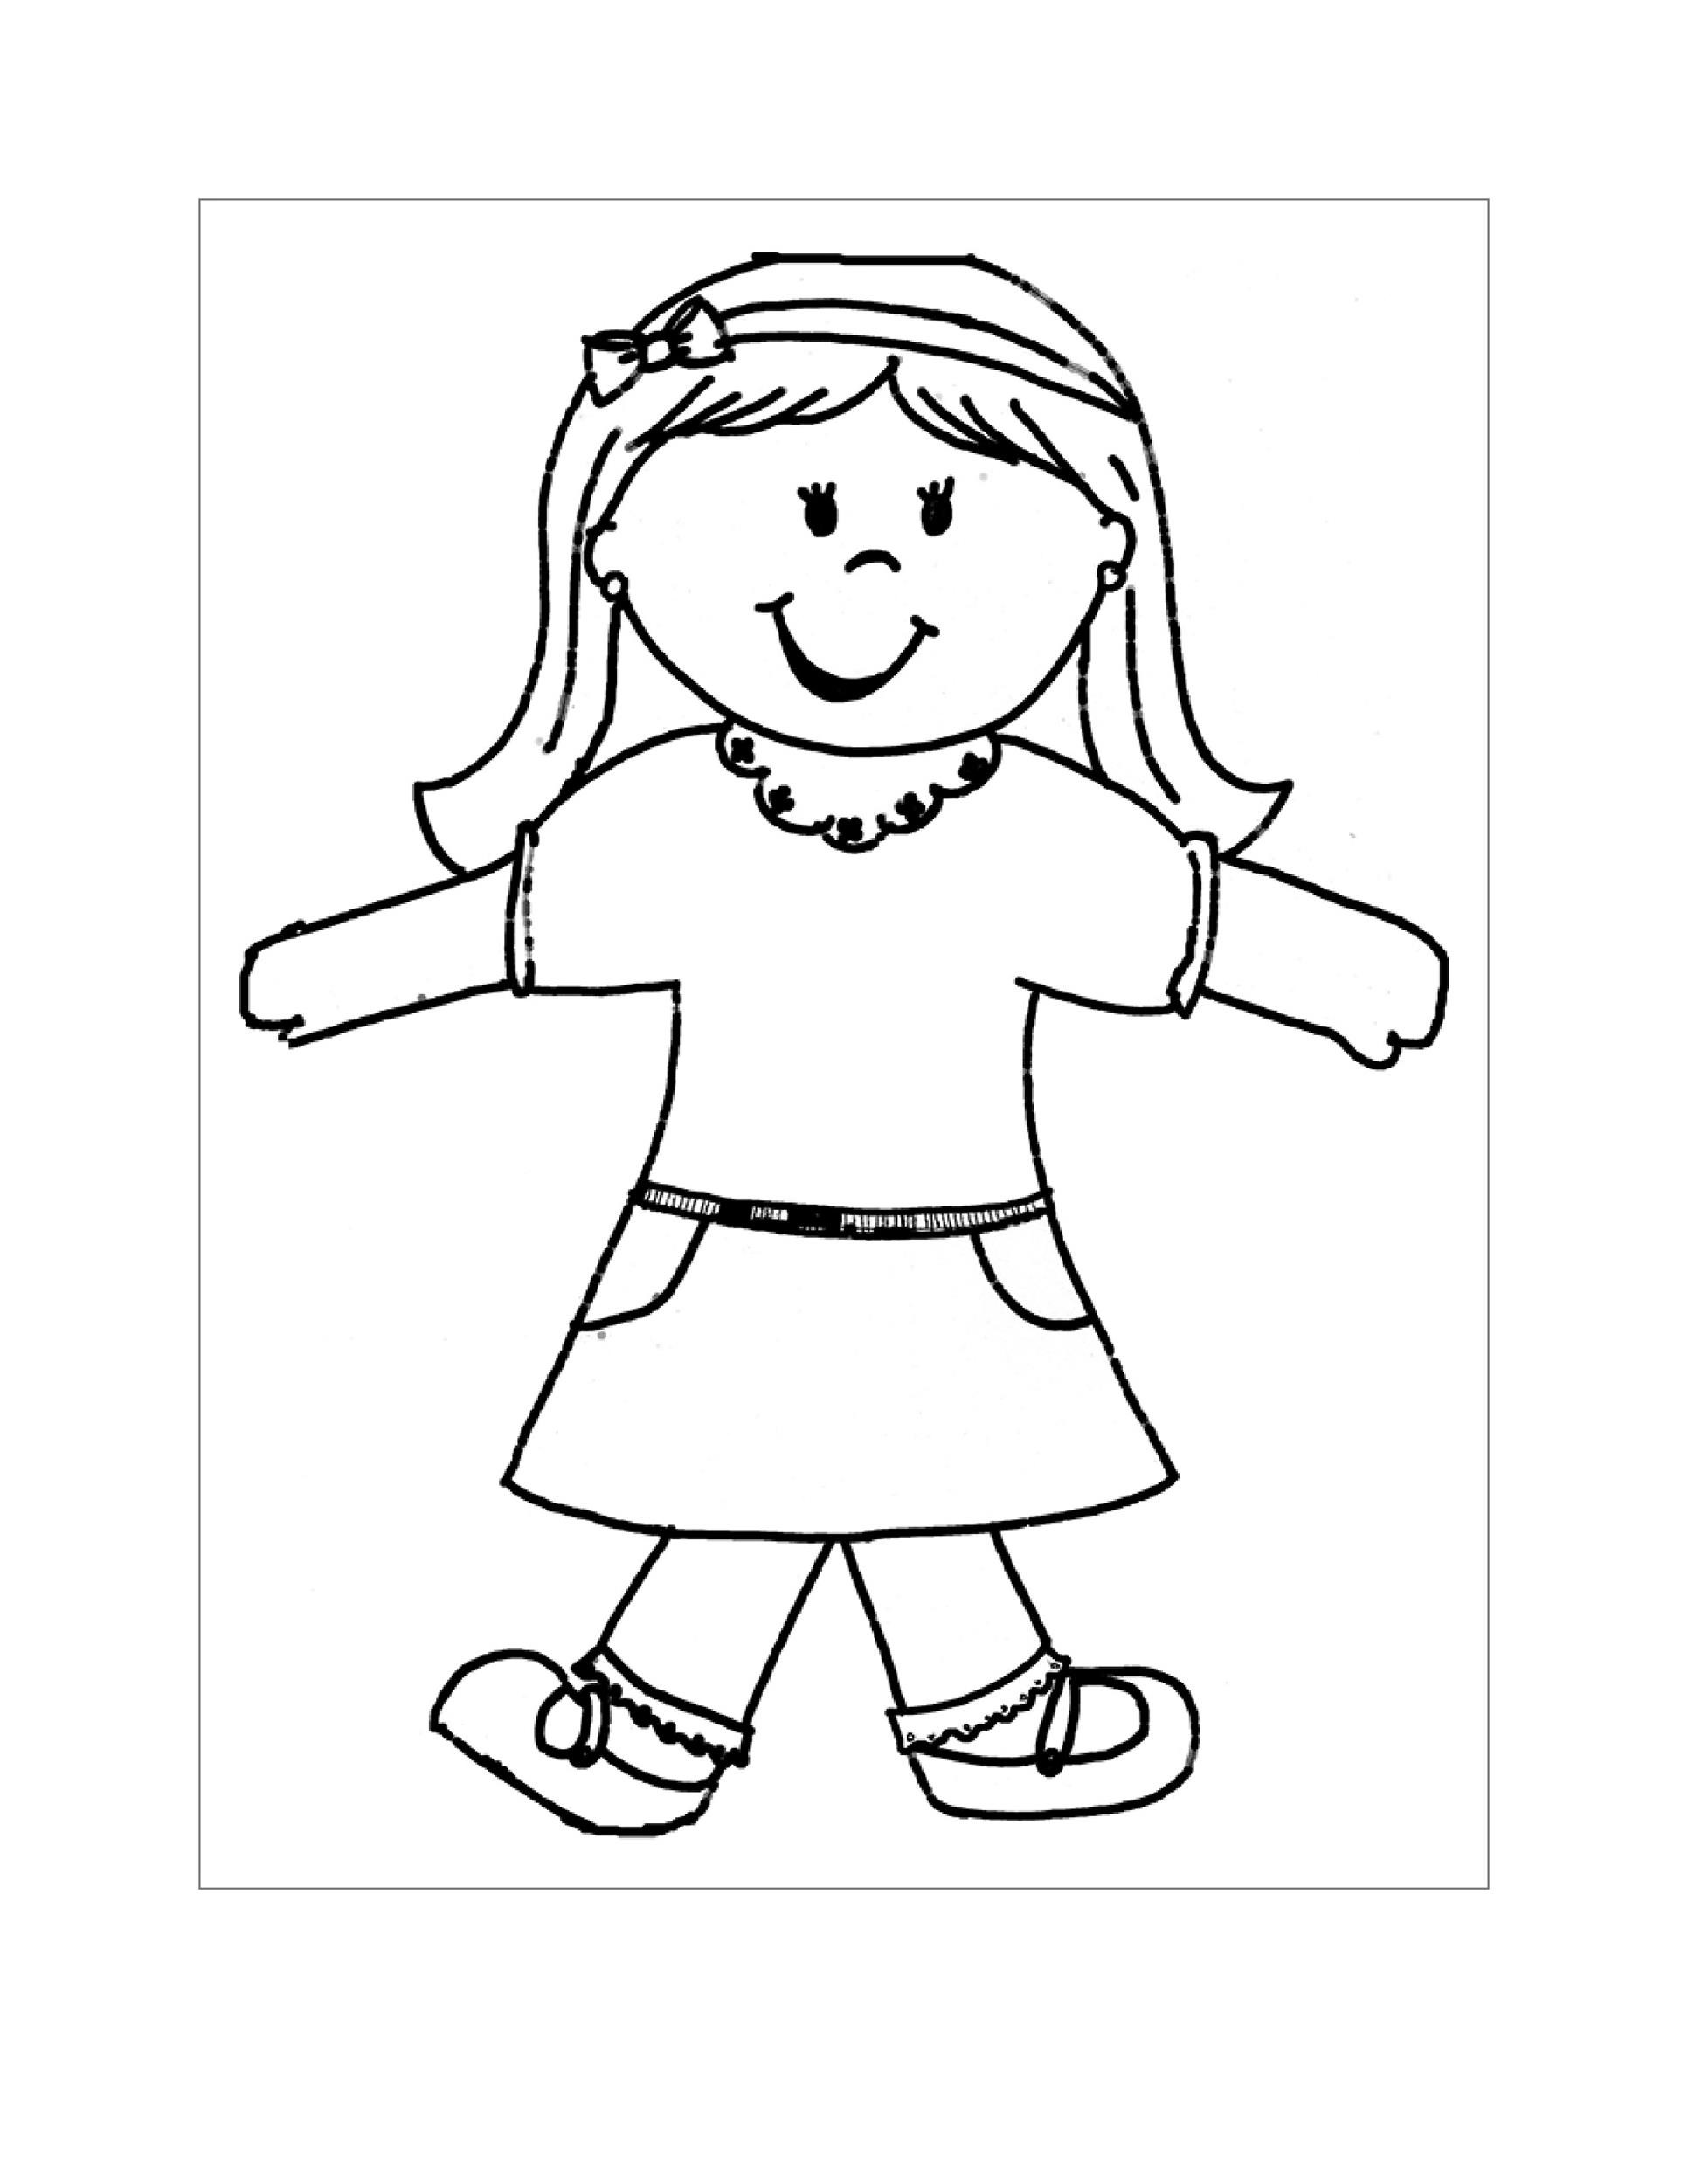 37 Flat Stanley Templates Amp Letter Examples Templatelab